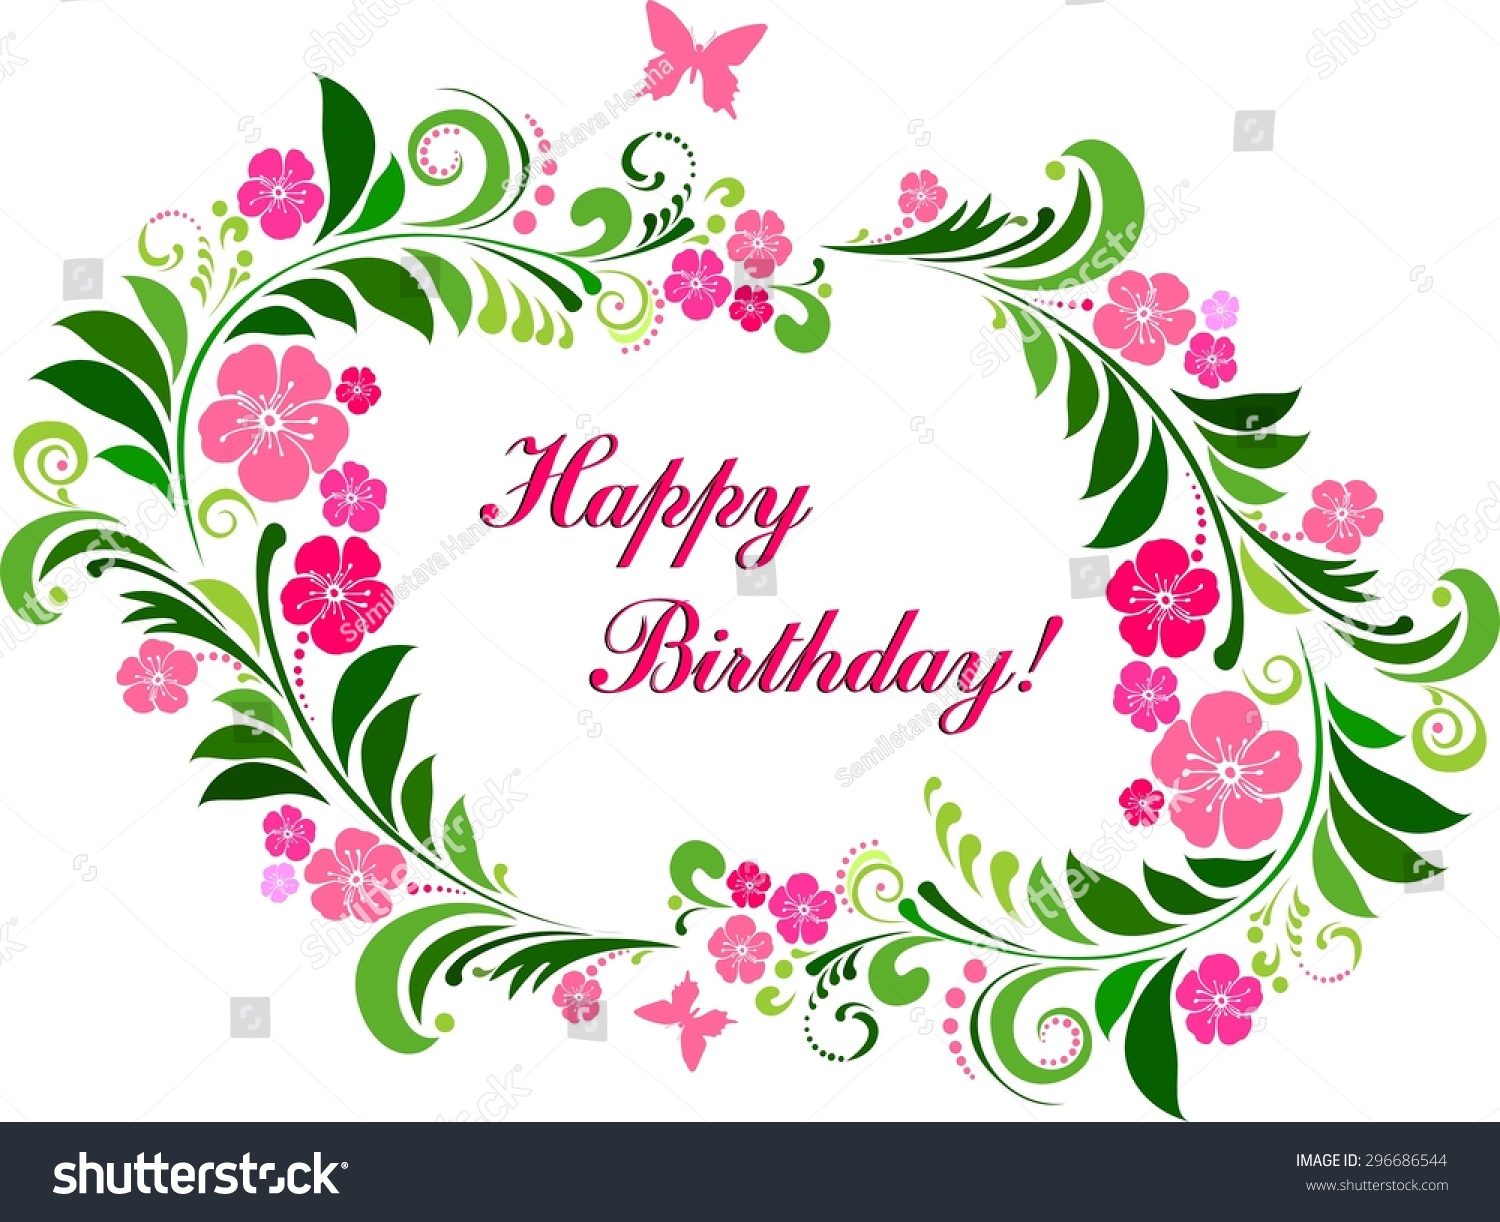 Happy birthday card celebration background flowers stock happy birthday card celebration background with flowers butterfly and place for your text izmirmasajfo